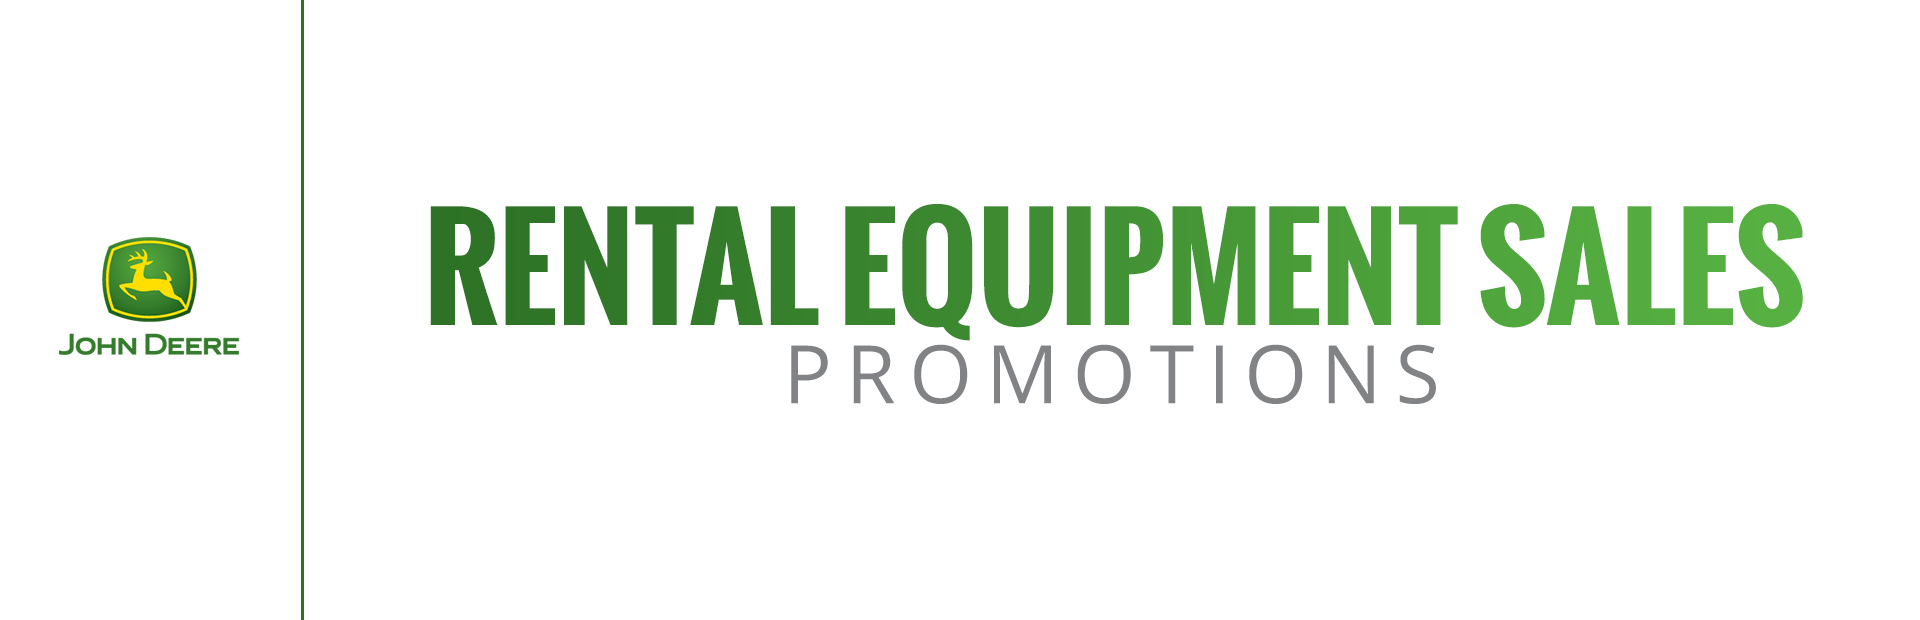 John Deere: Rental Equipment Sales